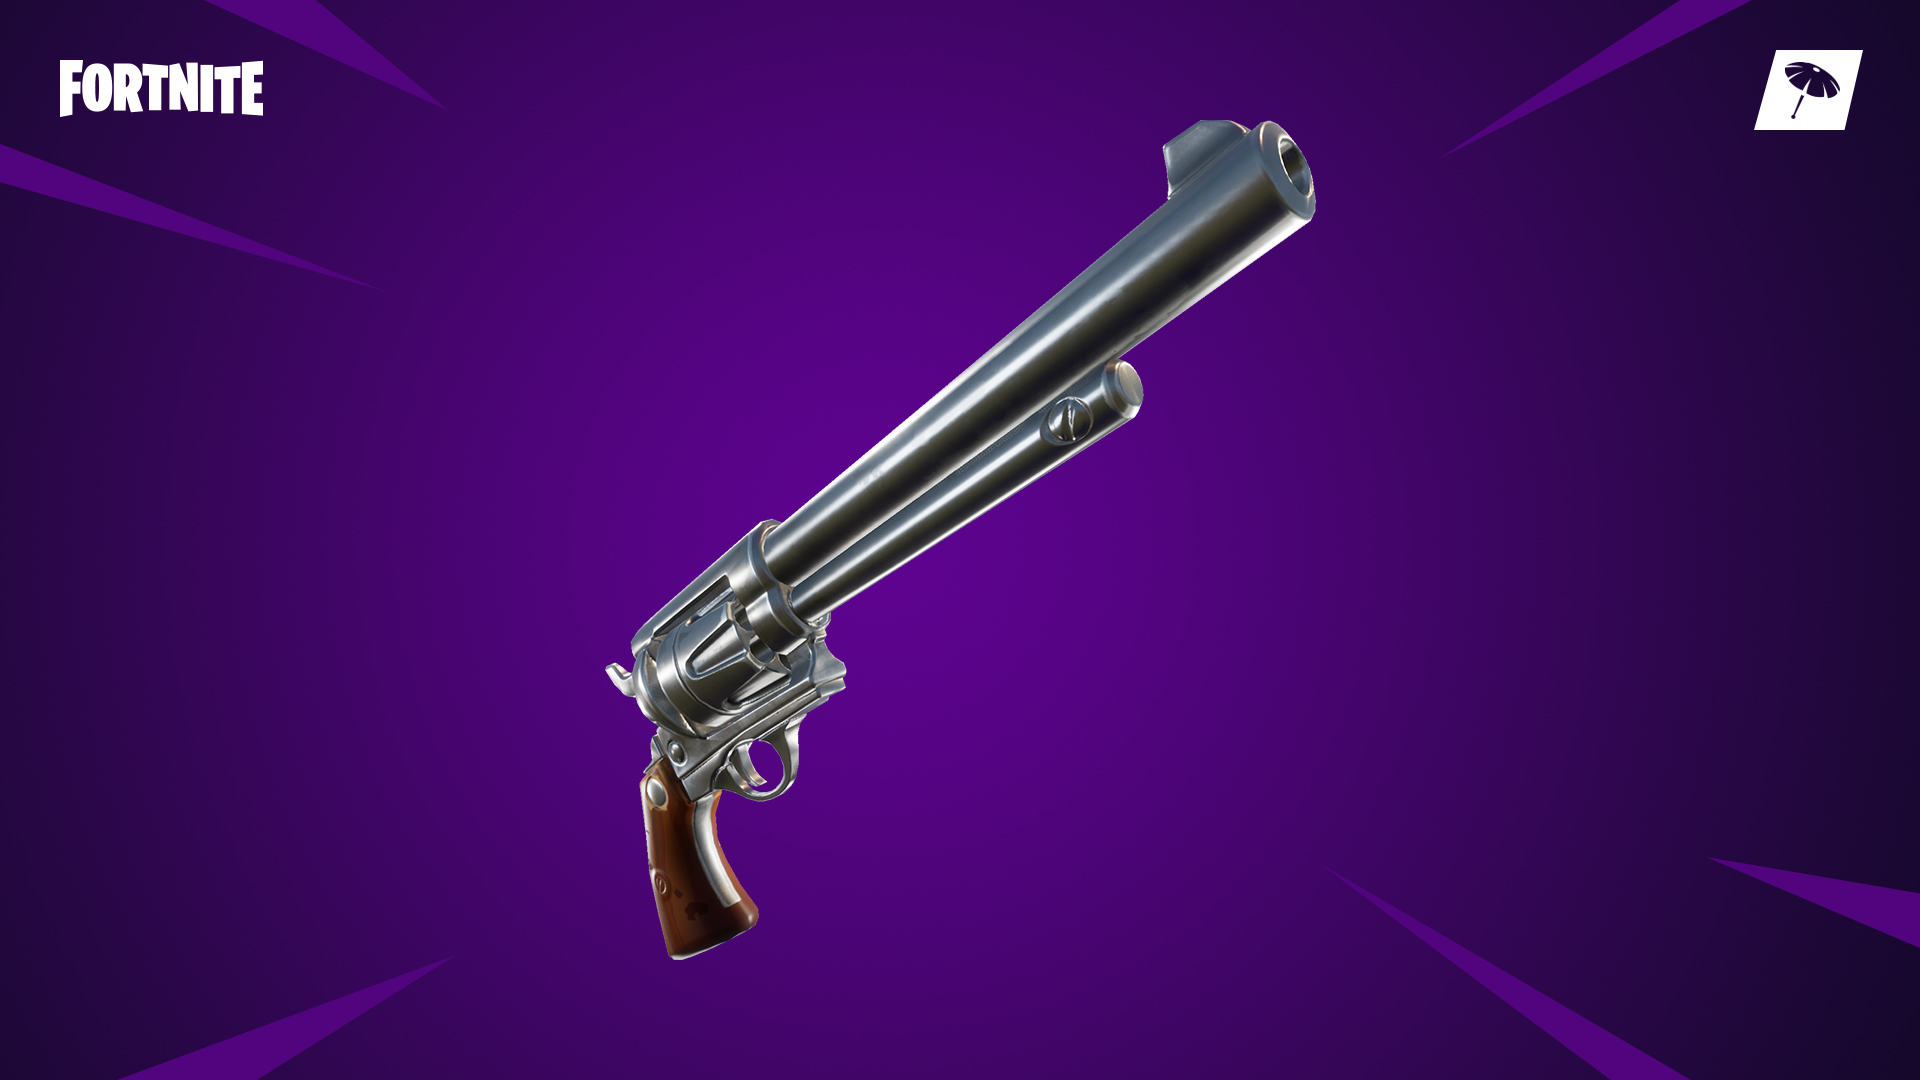 Fortnite Weapon - Sixth Shooter